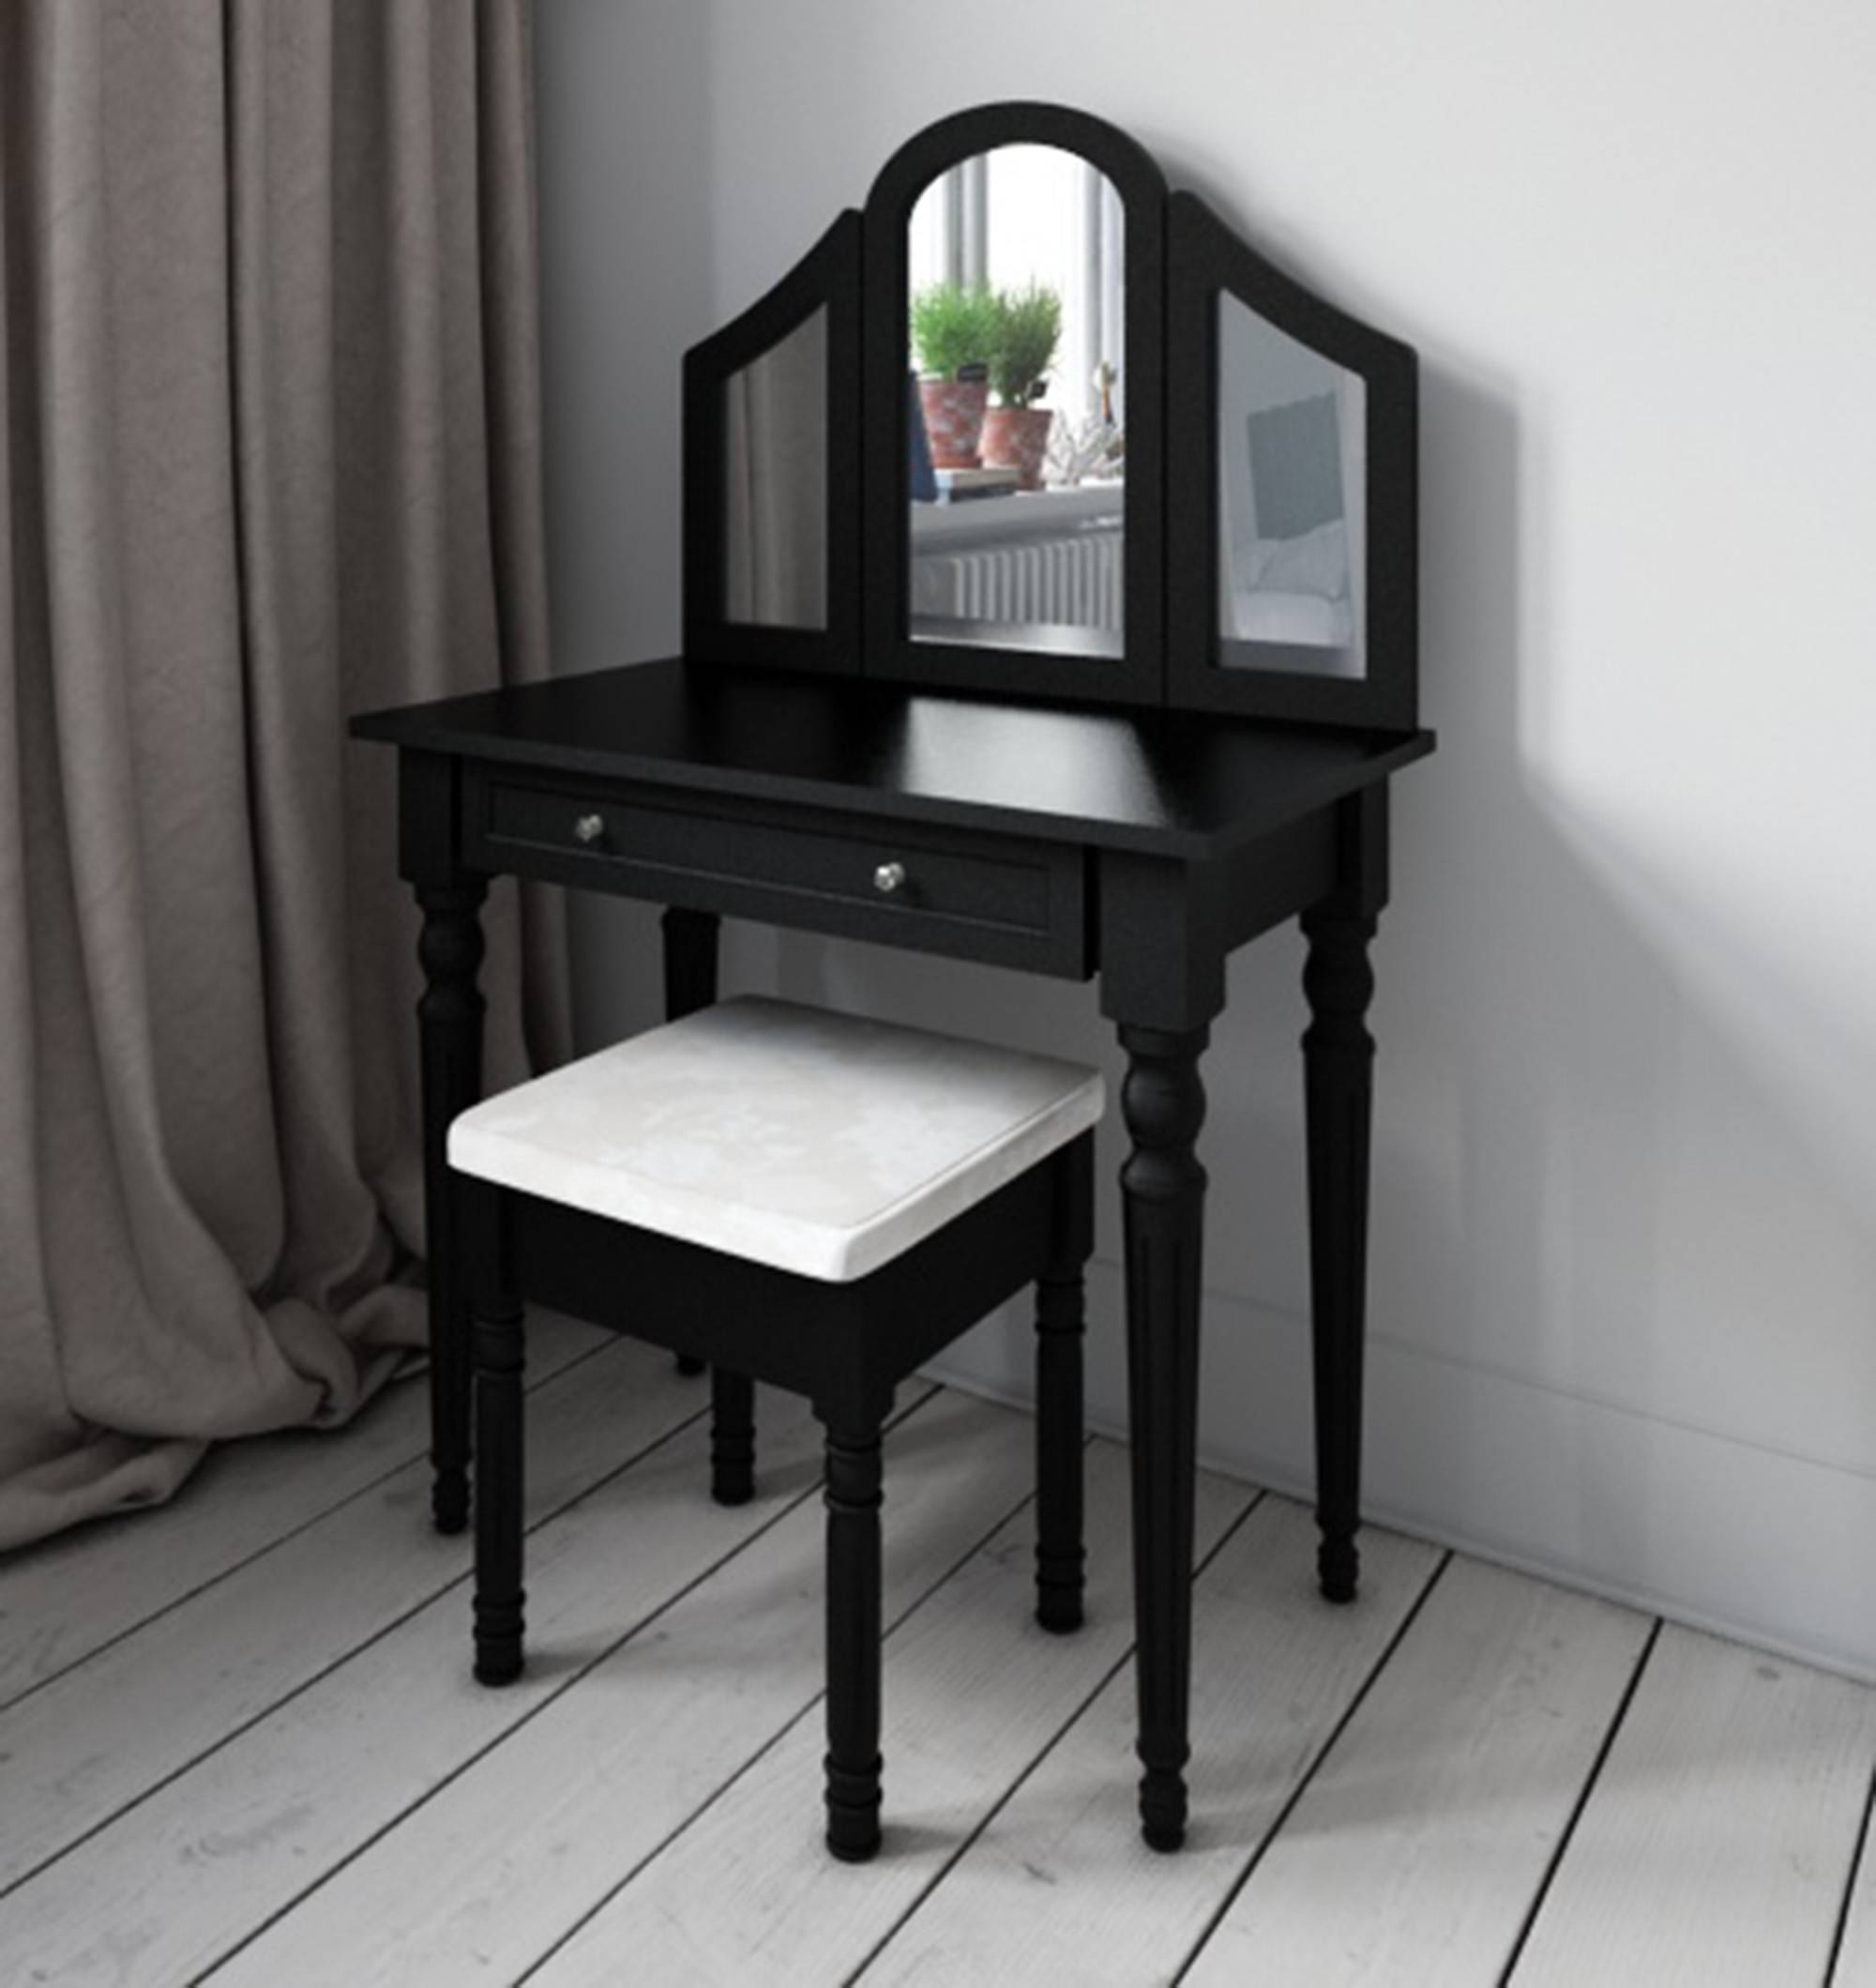 3 Mirrored Black Dressing Table From Abreo Abreo Home Furniture with Black Dressing Mirrors (Image 1 of 25)